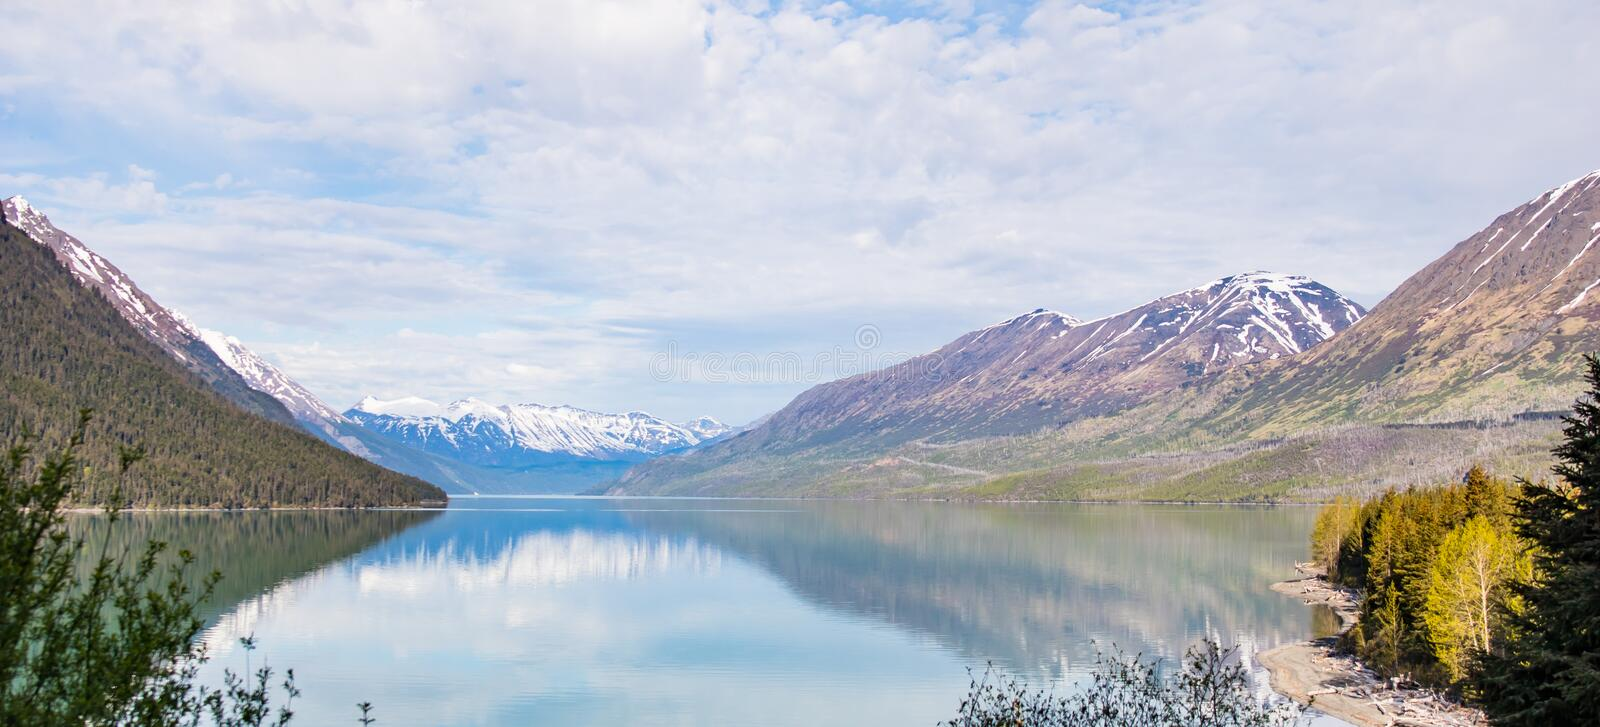 Landscape Reflection: Alaska Mountains Reflected from a Calm Lake royalty free stock images